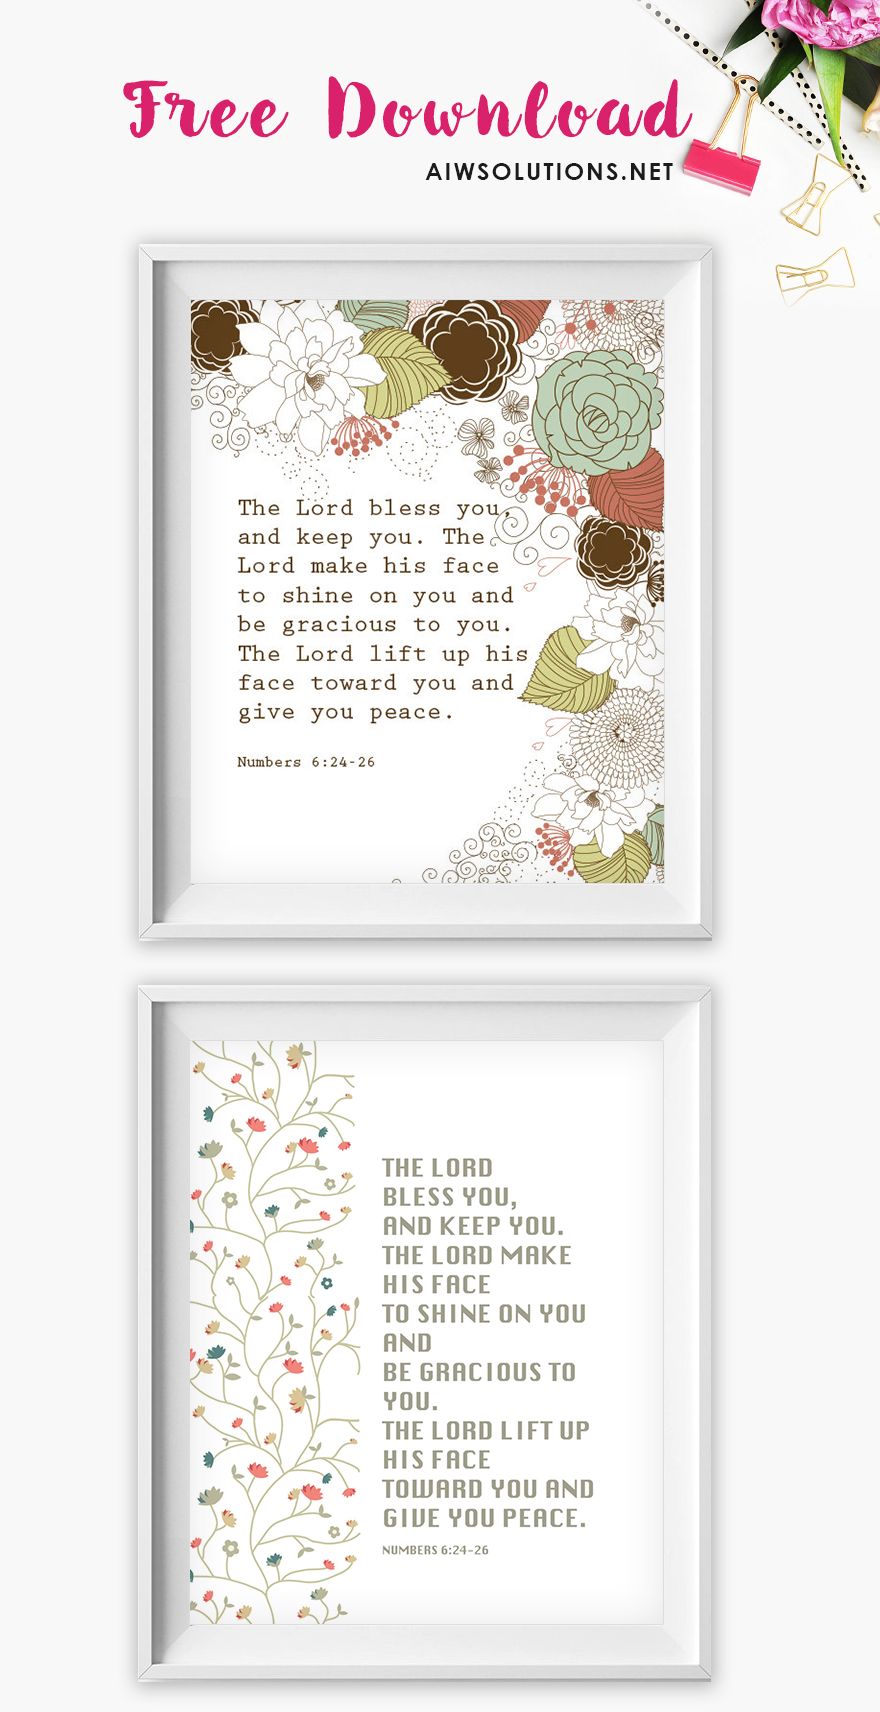 image about Free Printable Scripture Art titled Absolutely free down load Printable Scripture Artwork